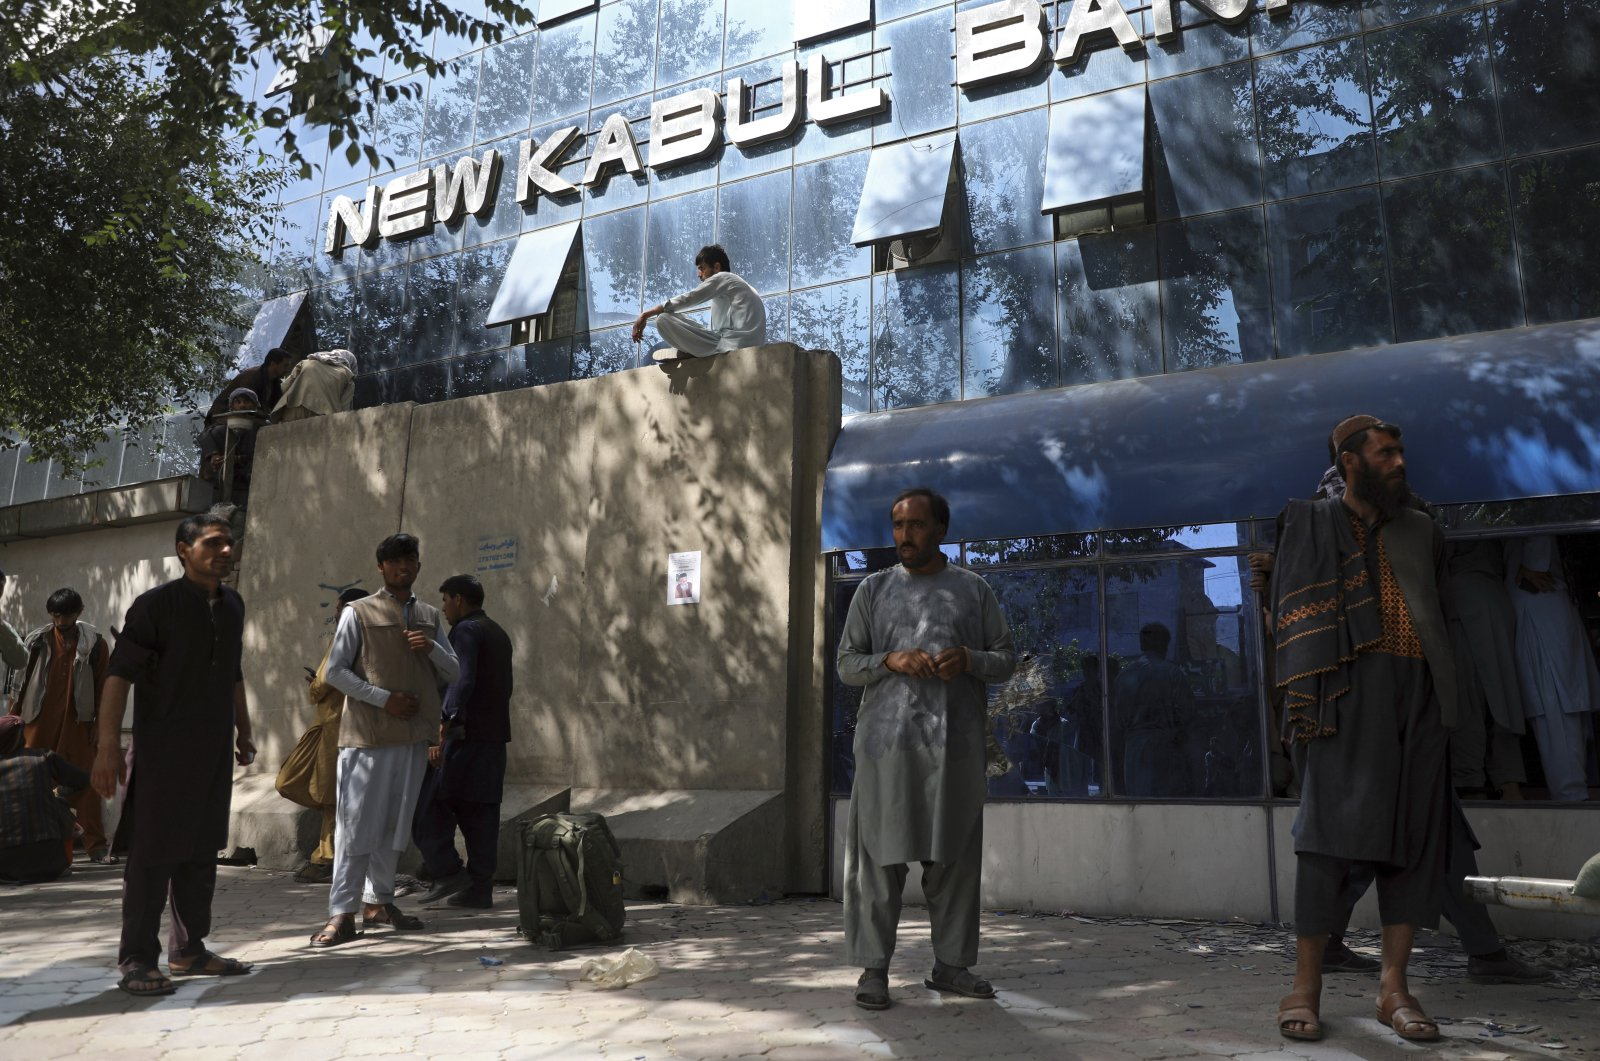 Afghans wait for hours to try to withdraw money, in front of New Kabul Bank, in Kabul, Afghanistan, Aug. 15, 2021. (AP Photo)